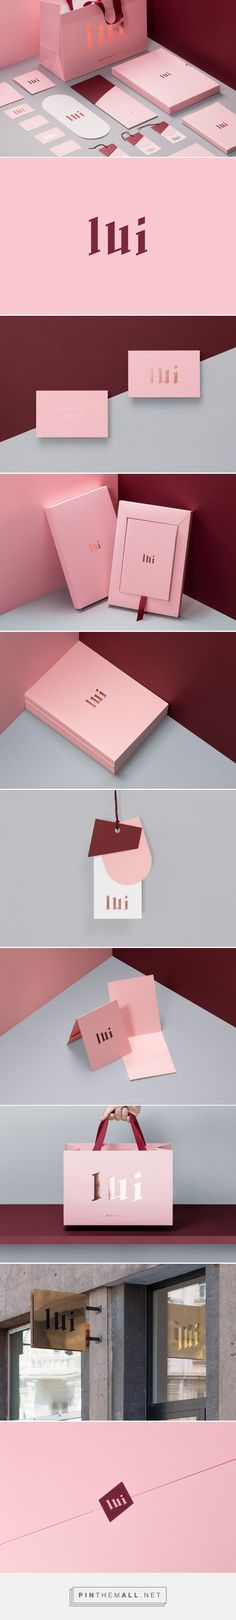 Lui Store Fashion Boutique Branding by Gustaw Dmoswski Web Design, Fashion Logo Design, Fashion Branding, Branding Agency, Business Branding, Business Card Design, Luxury Branding, Collateral Design, Brand Identity Design